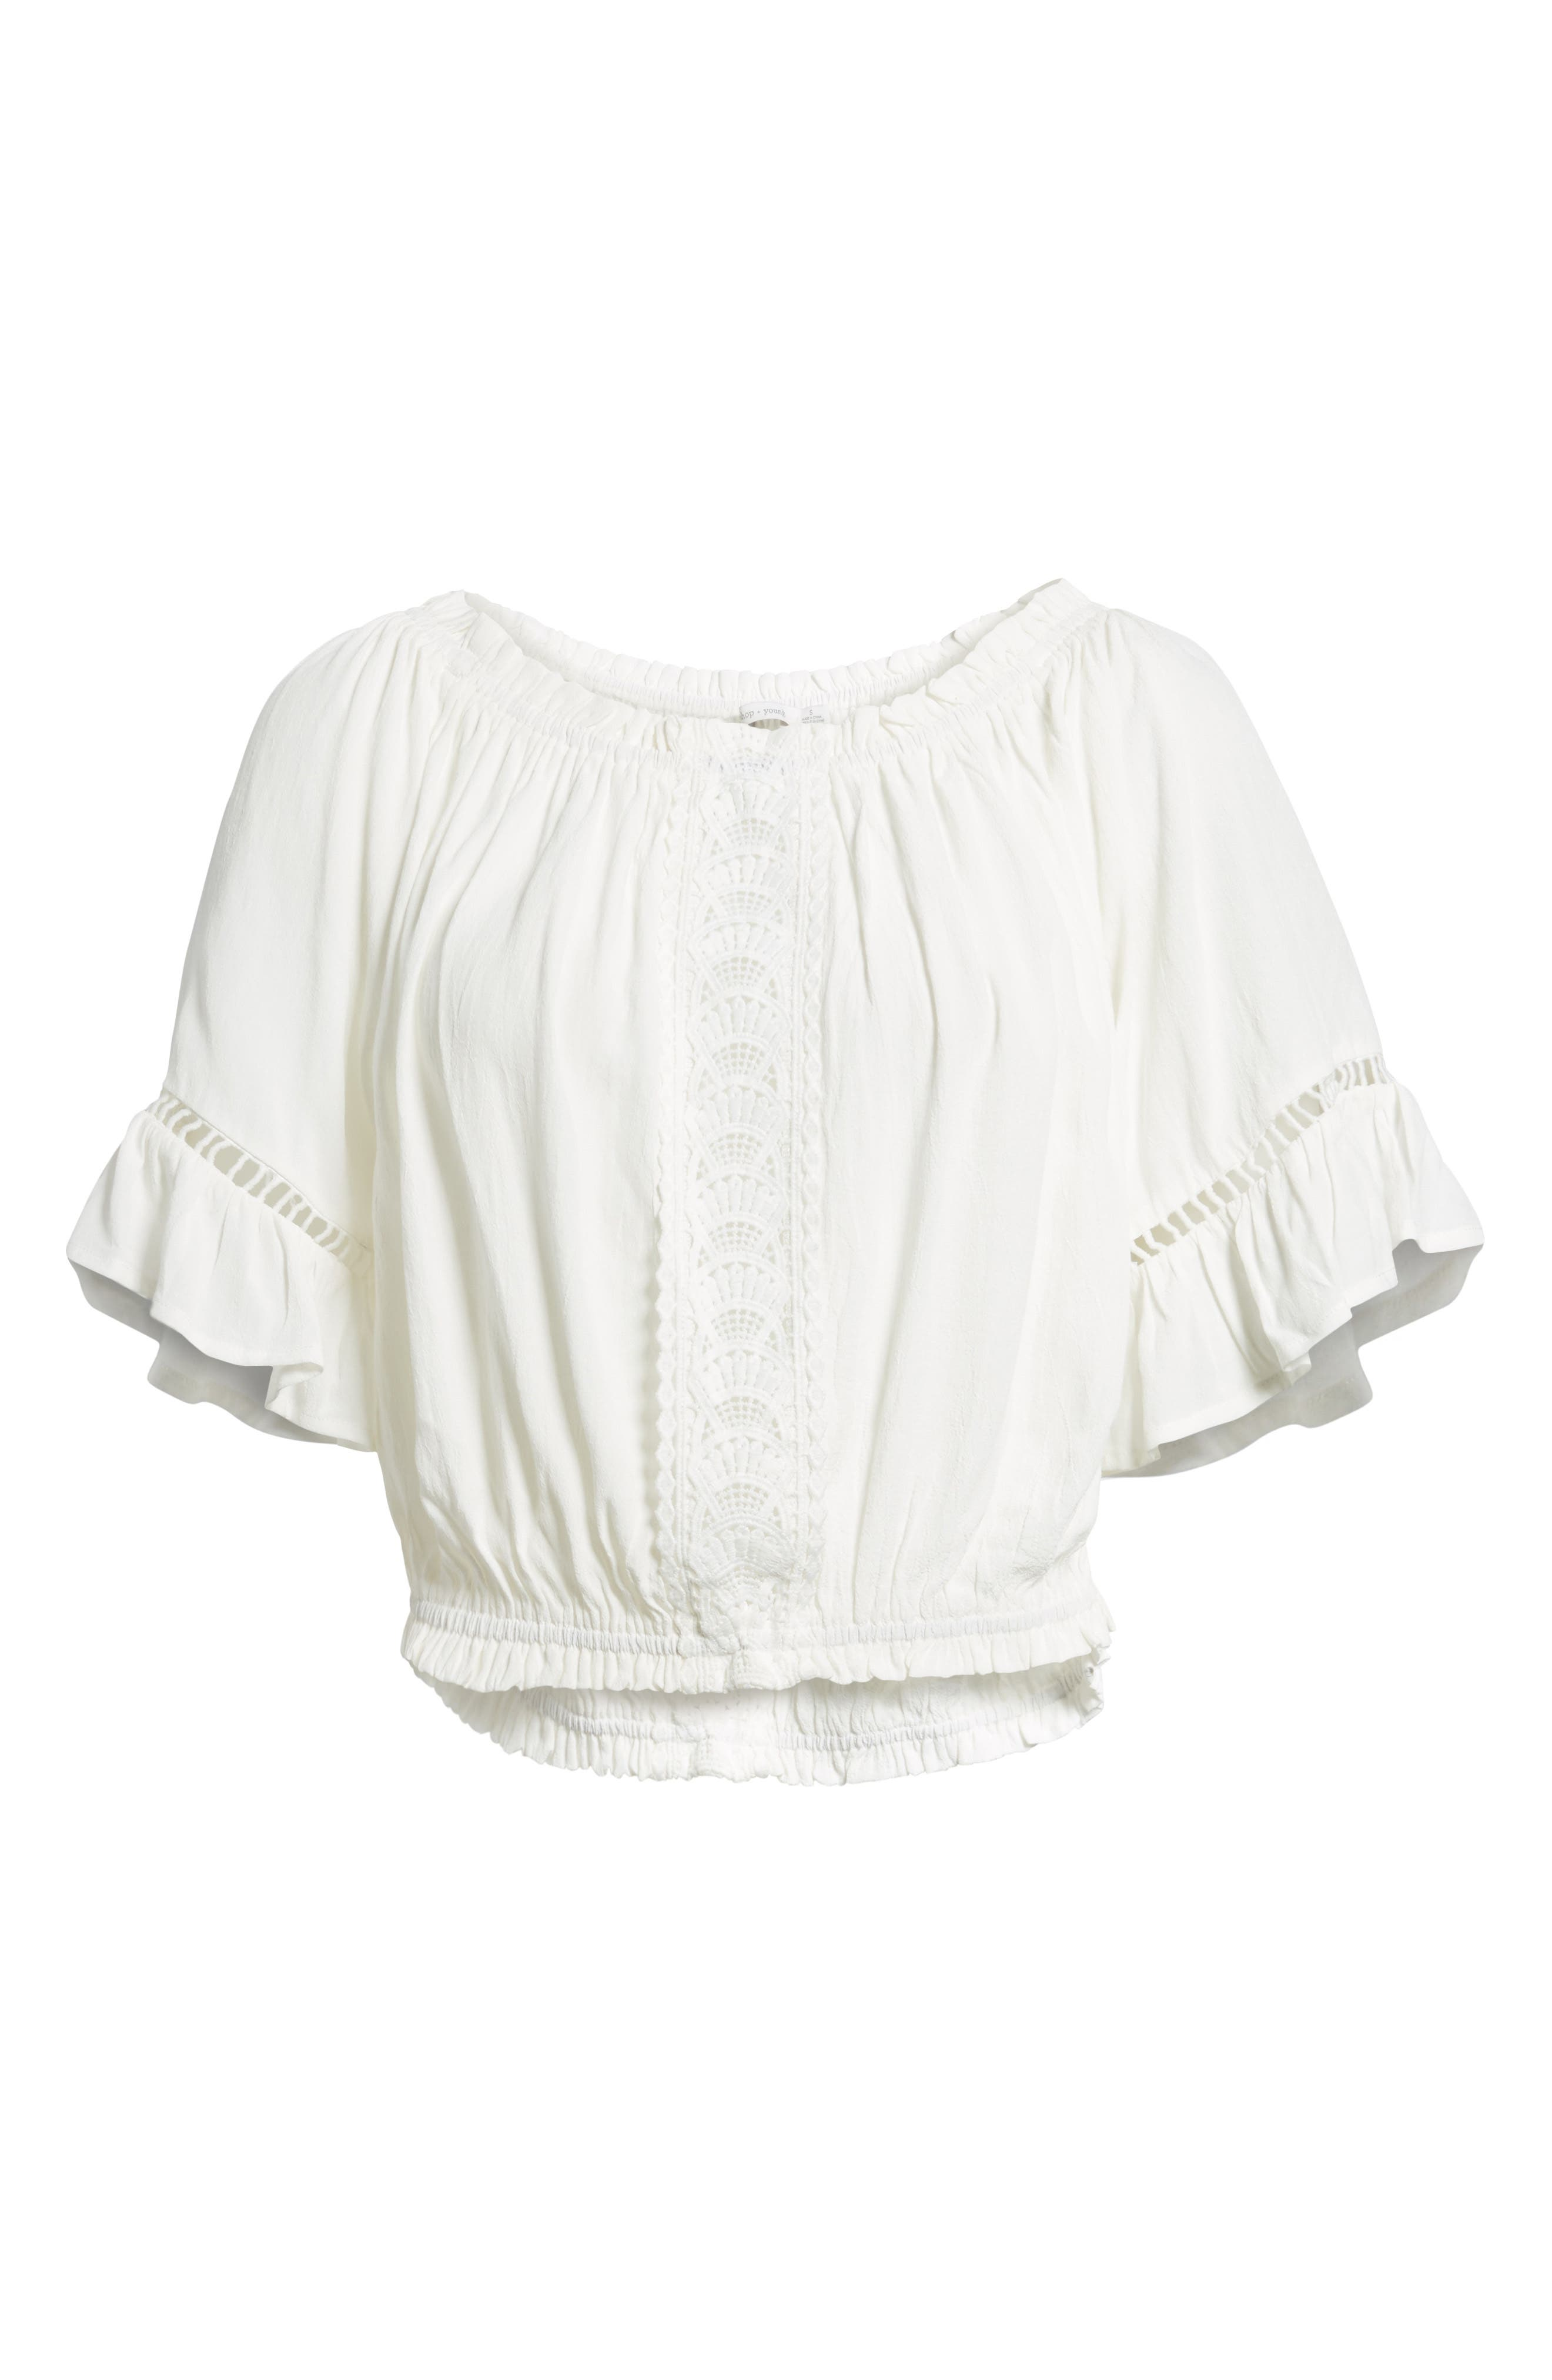 Bishop + Young Off the Shoulder Poet Top,                             Alternate thumbnail 6, color,                             White